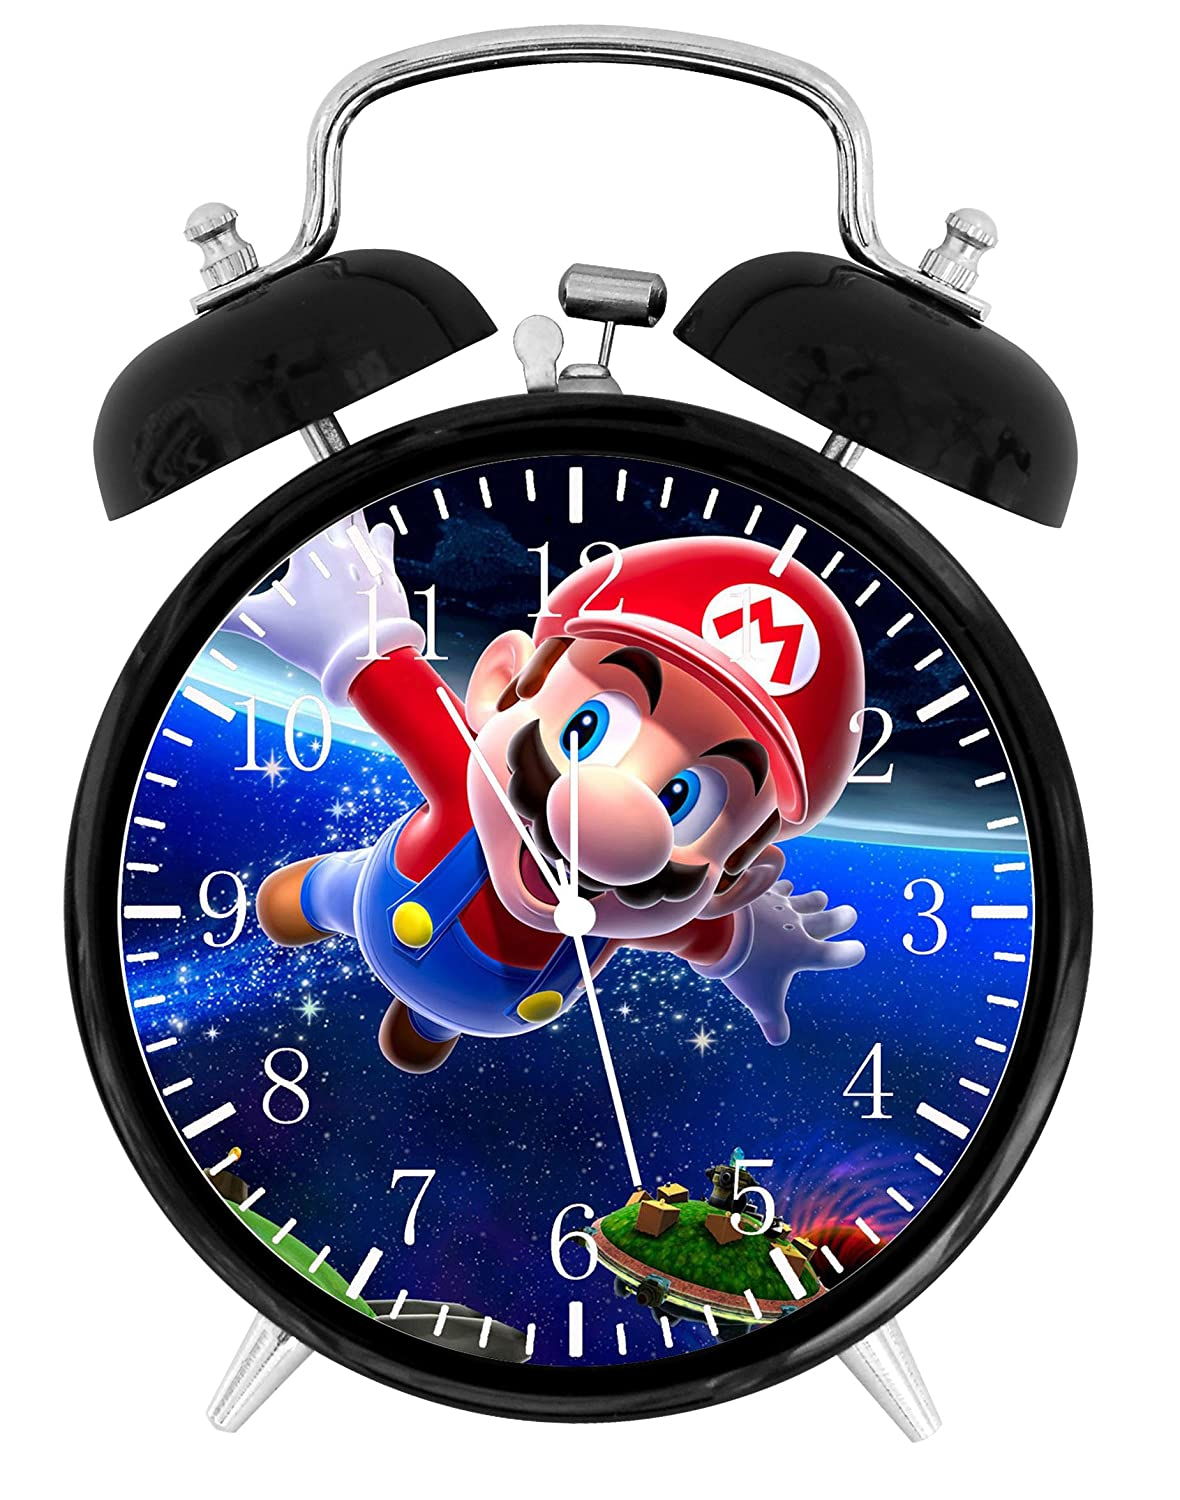 Super Mario Twin Bells Alarm Desk Clock 4 Home Office Decor W04 Nice for Gifts